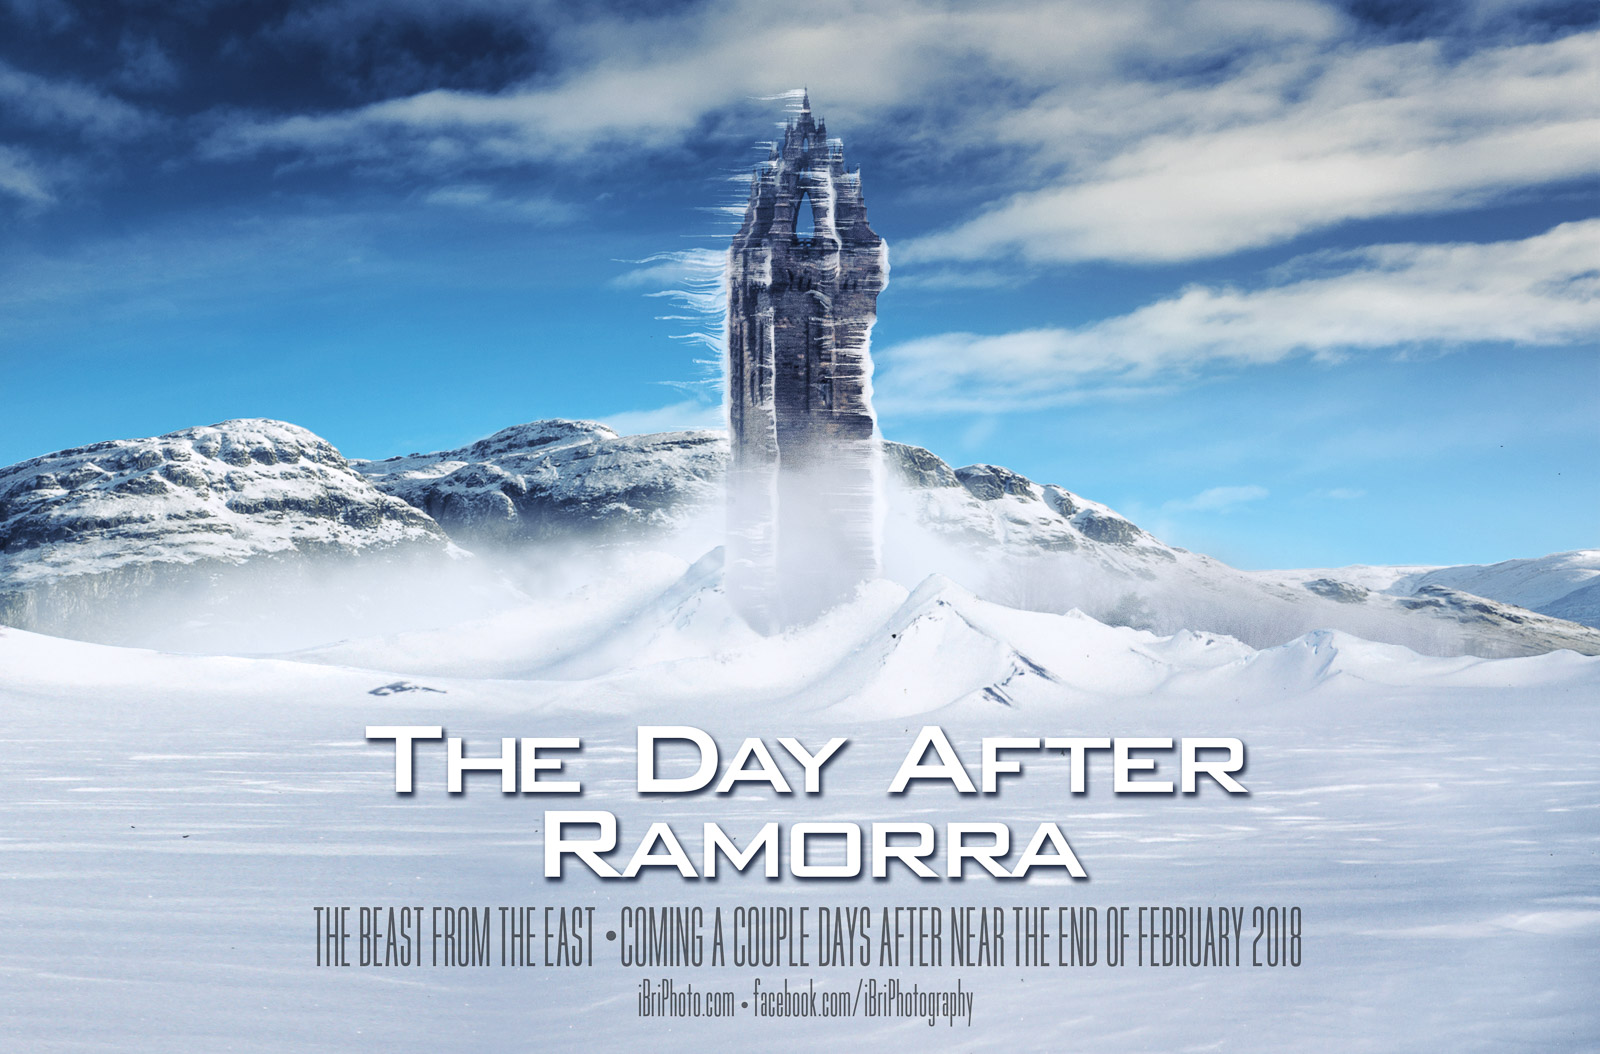 The Day After Ramorra